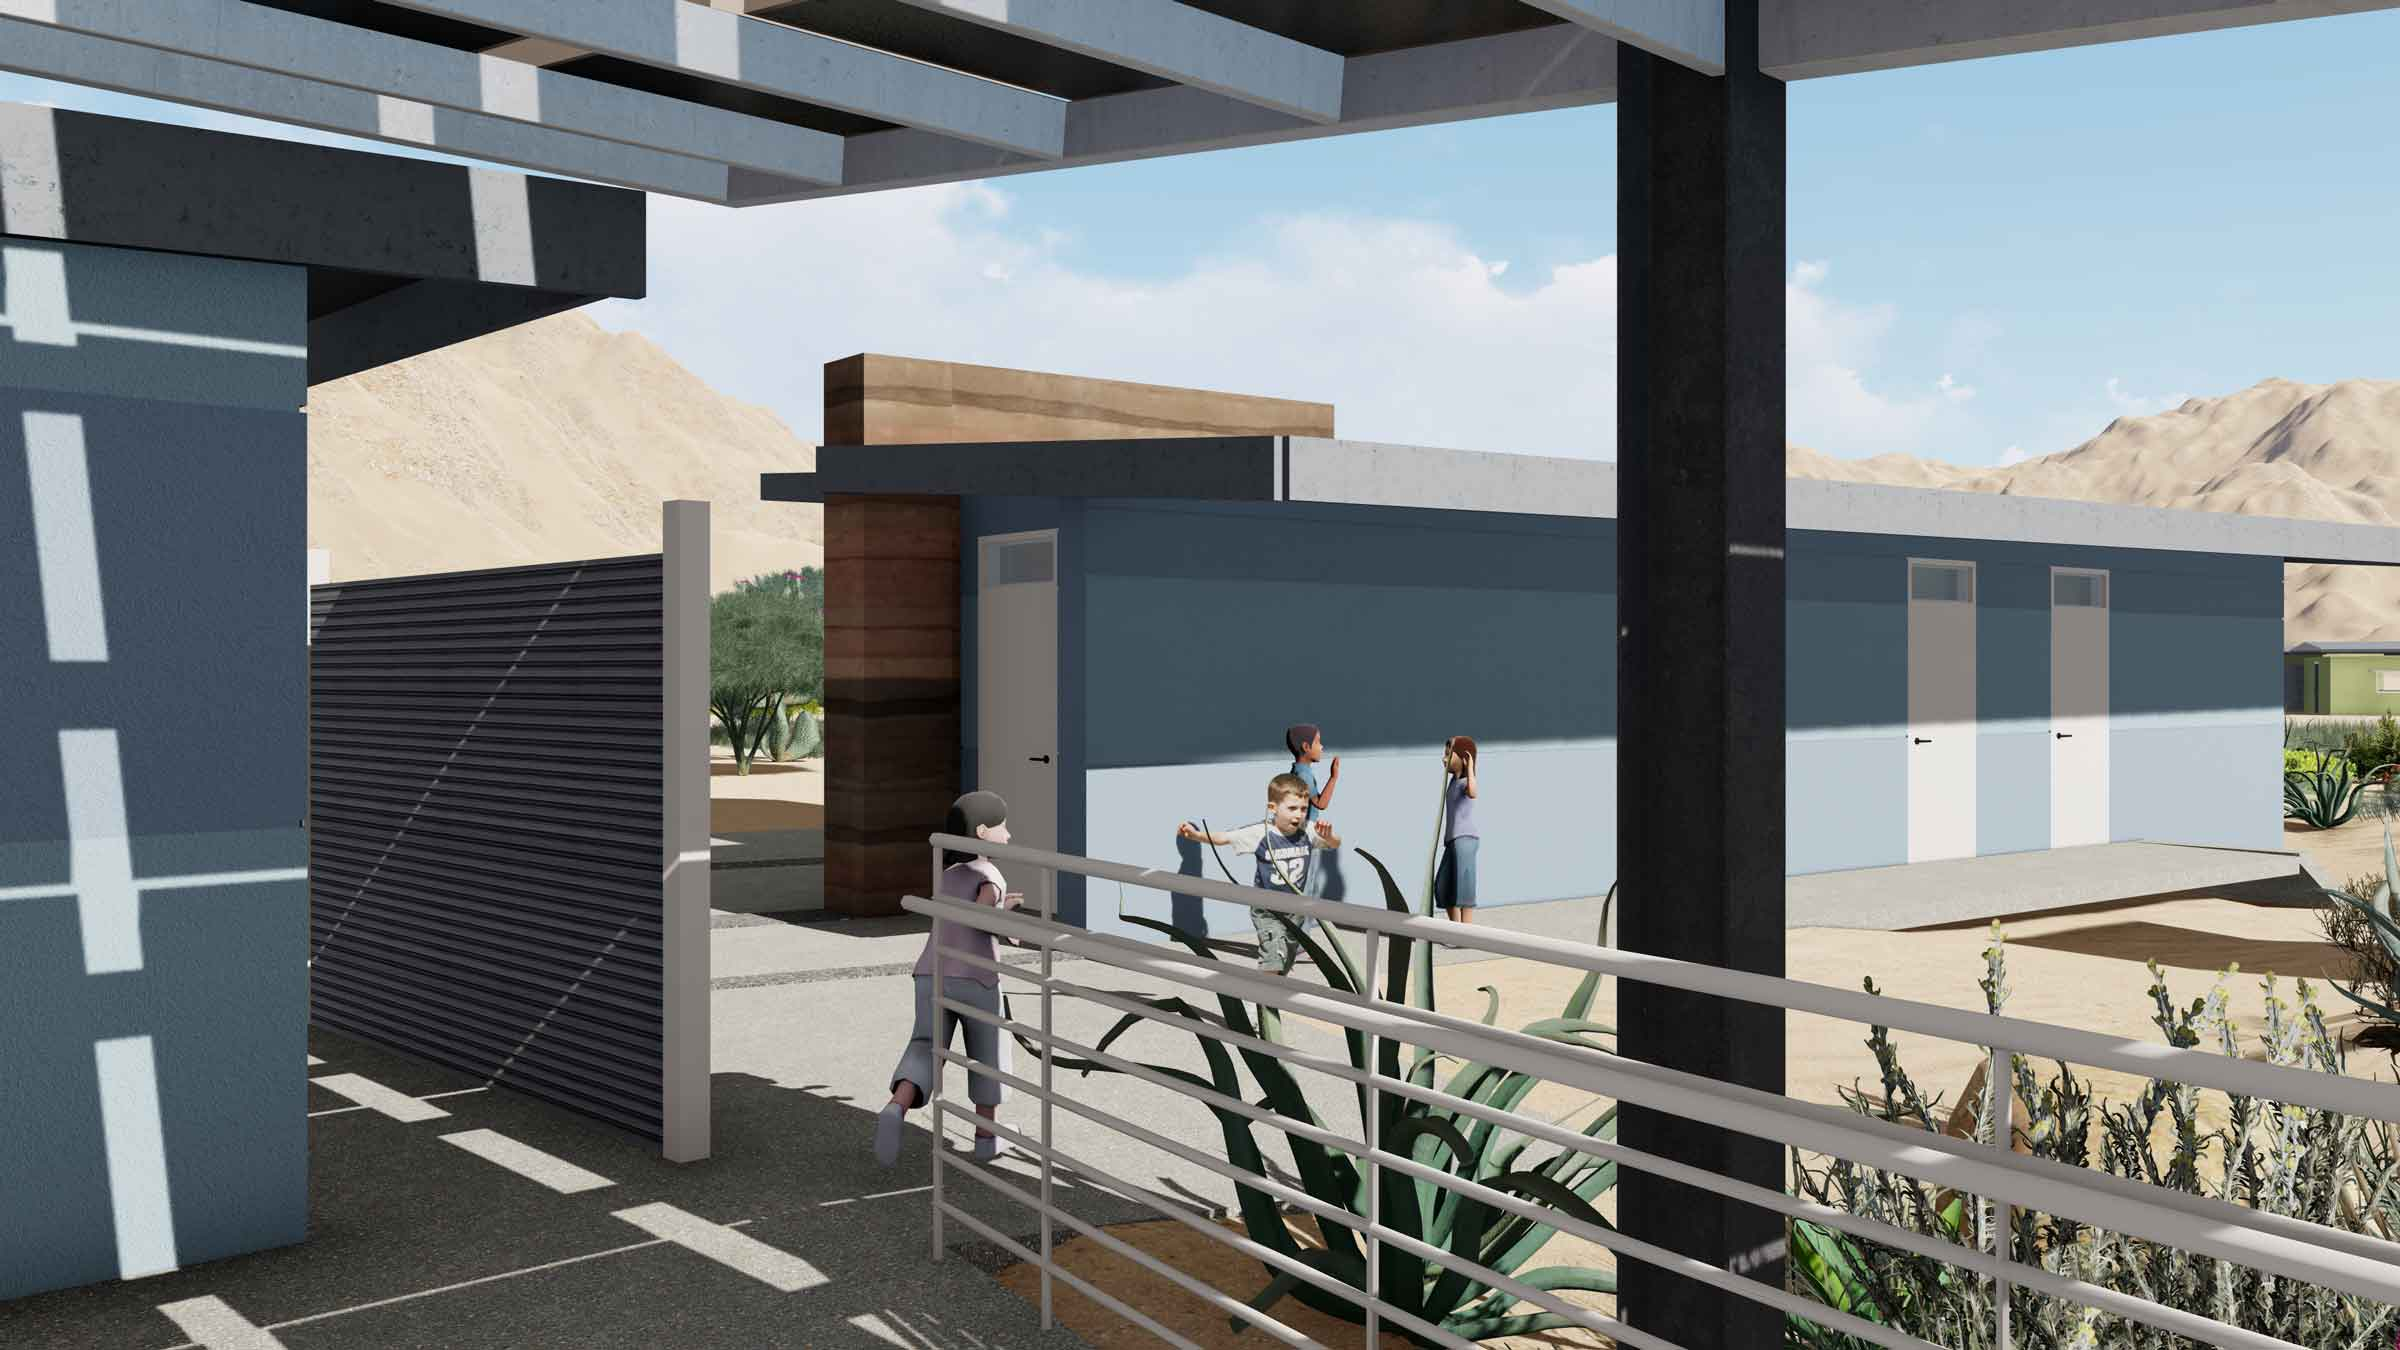 Shaded passageways and native landscaping will surround the new facilities.  All facilities and walk